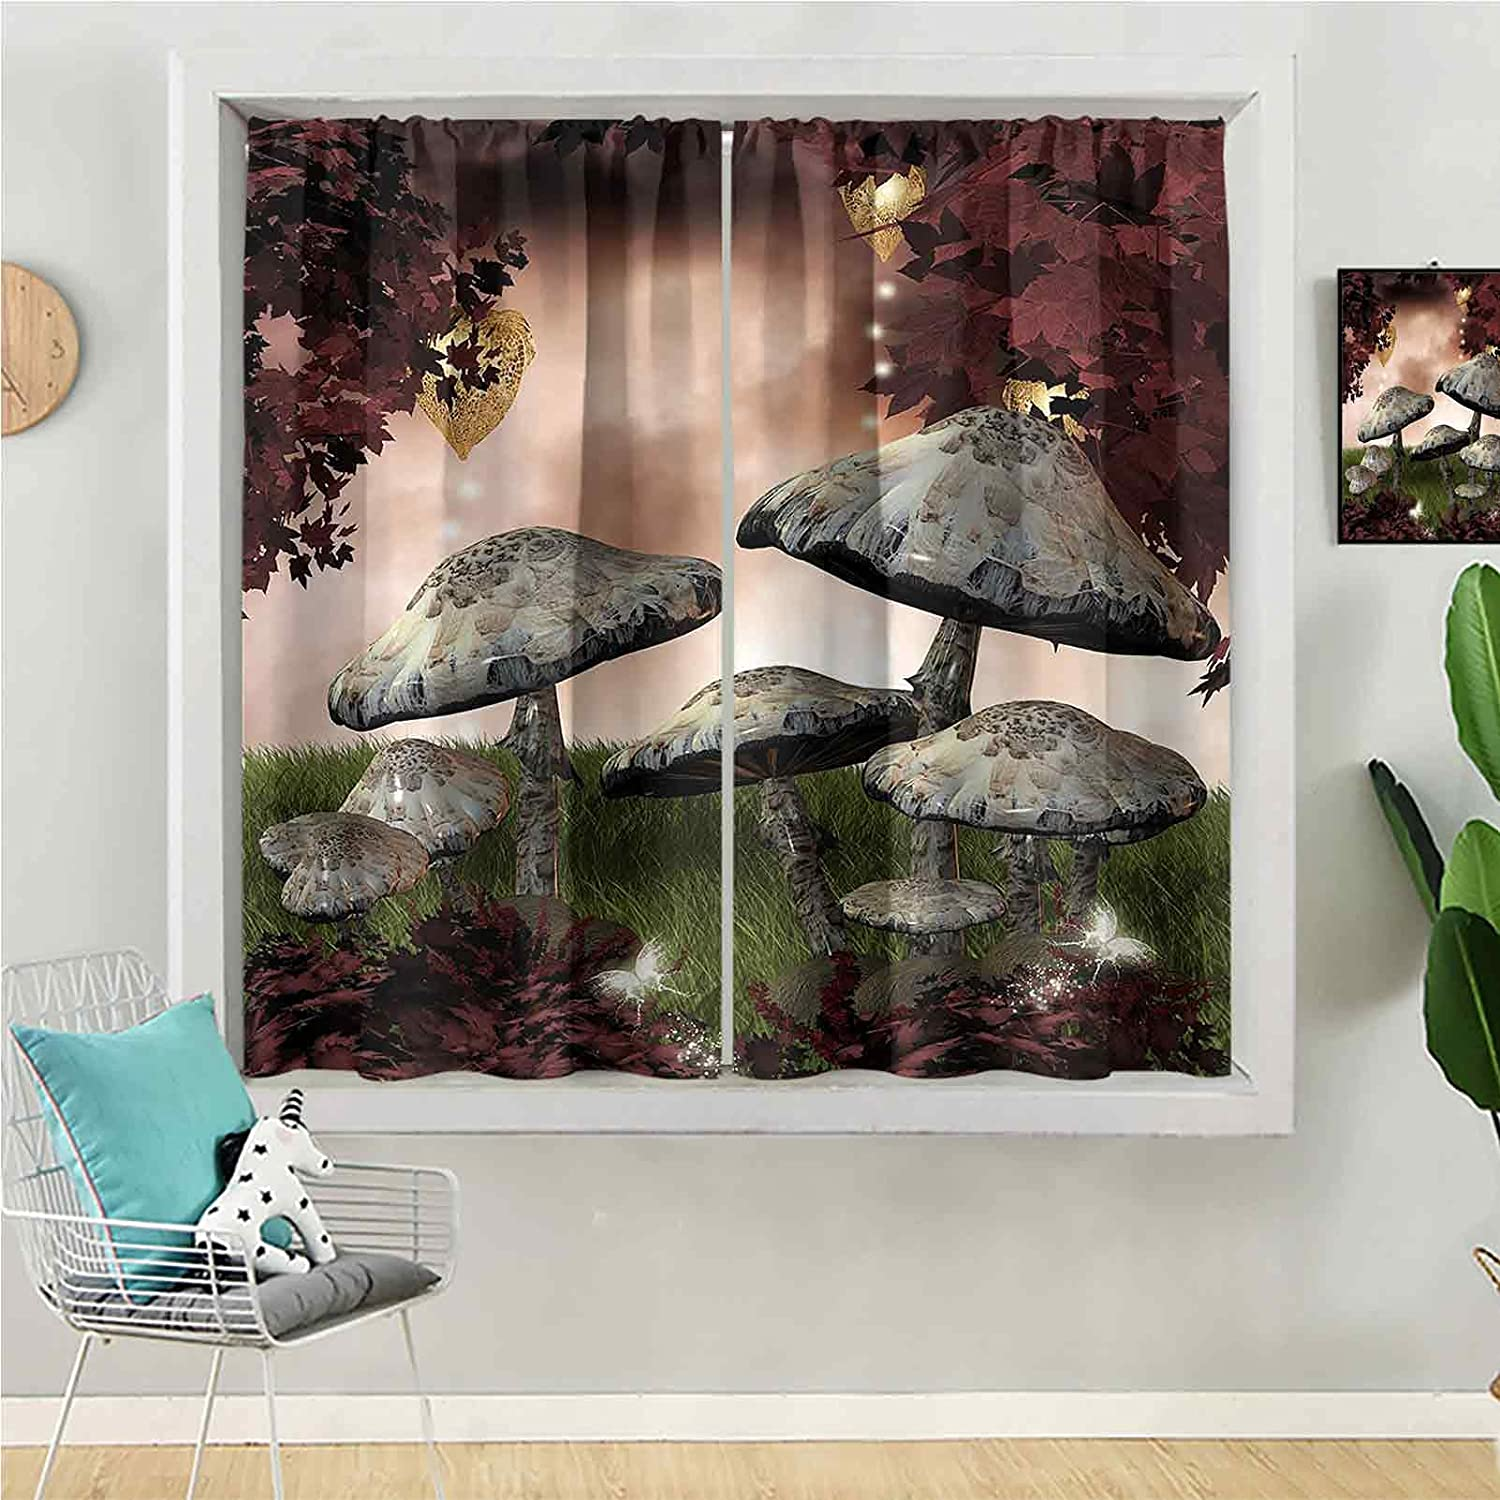 Blackout Curtain 72 inches Long Max 61% OFF Window Be for Panel Kids Reservation